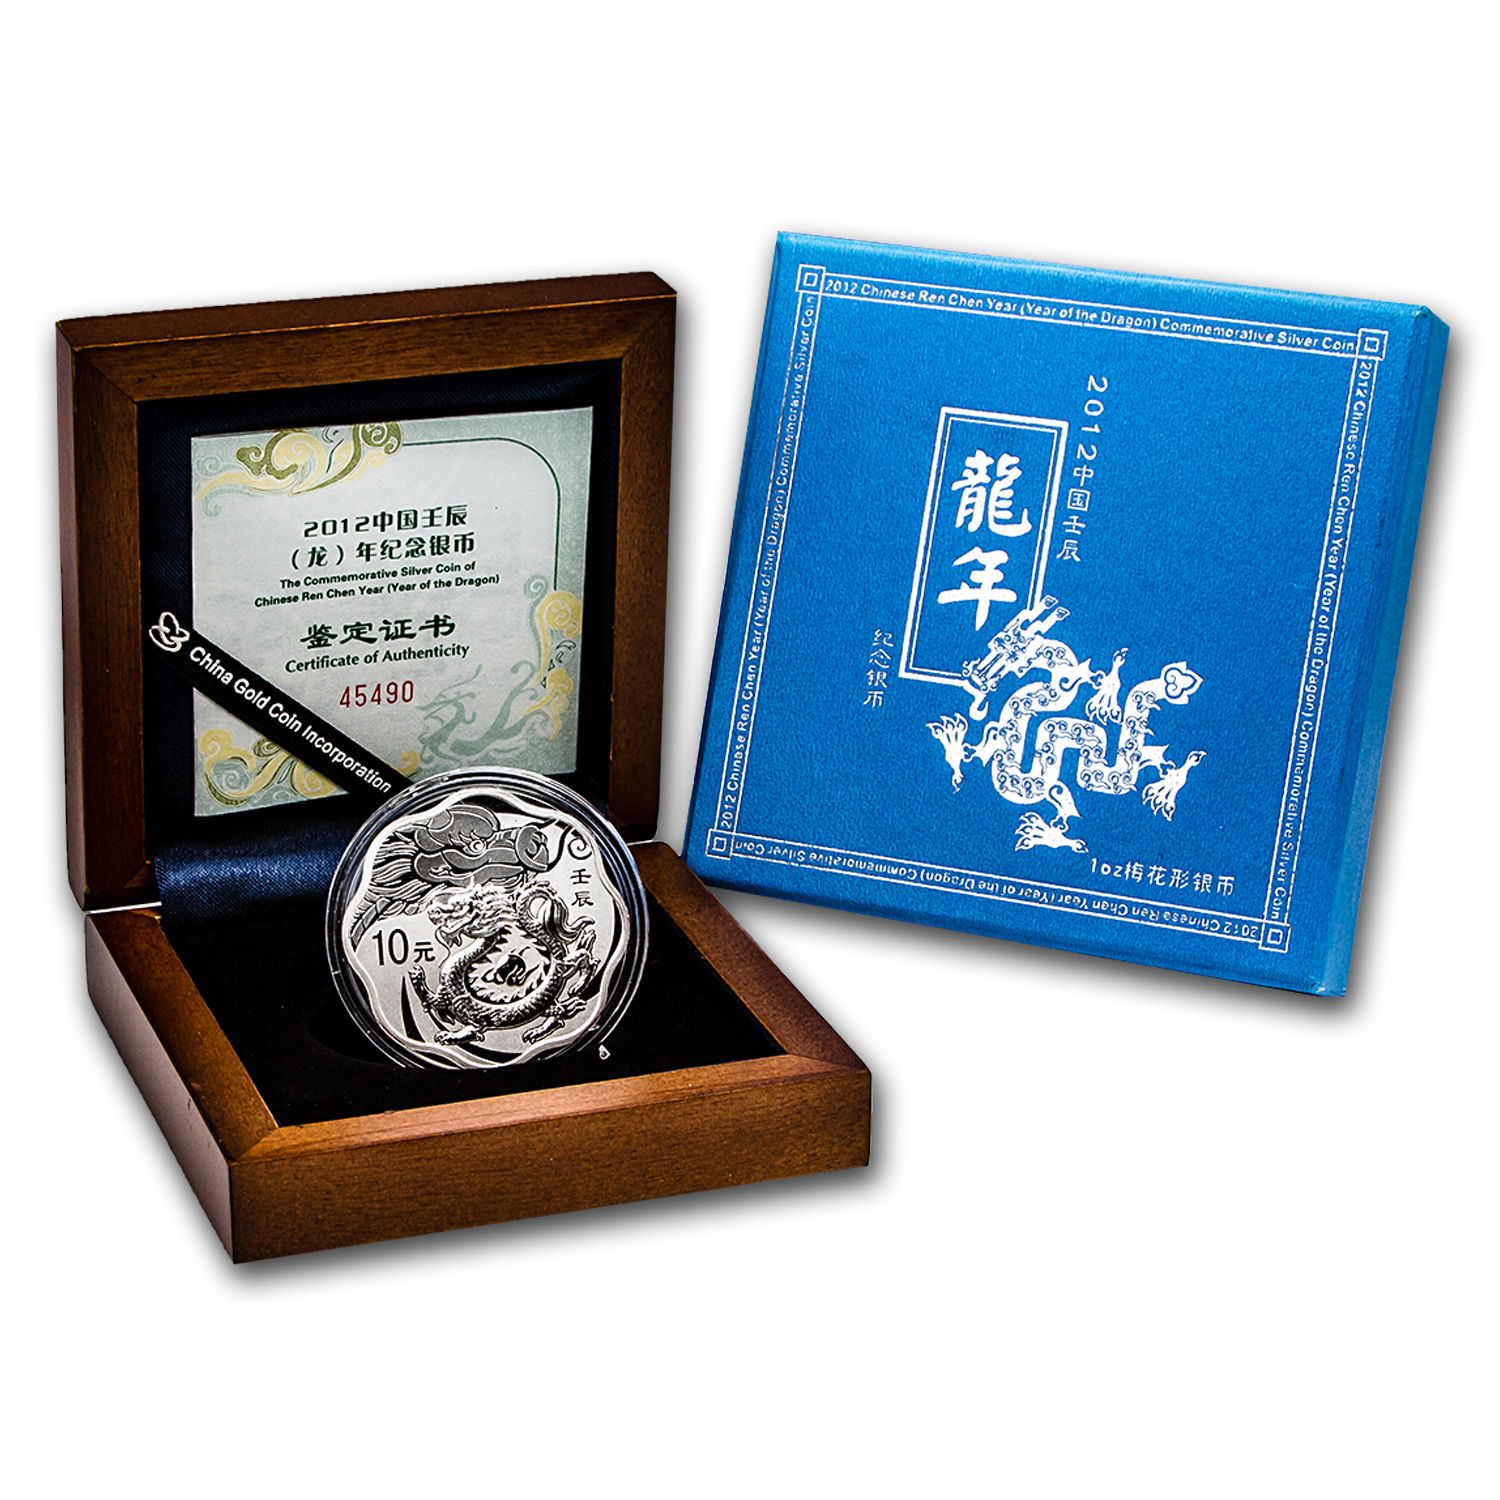 2012 China 1 oz Silver Flower Year of the Dragon (w/Box & COA)